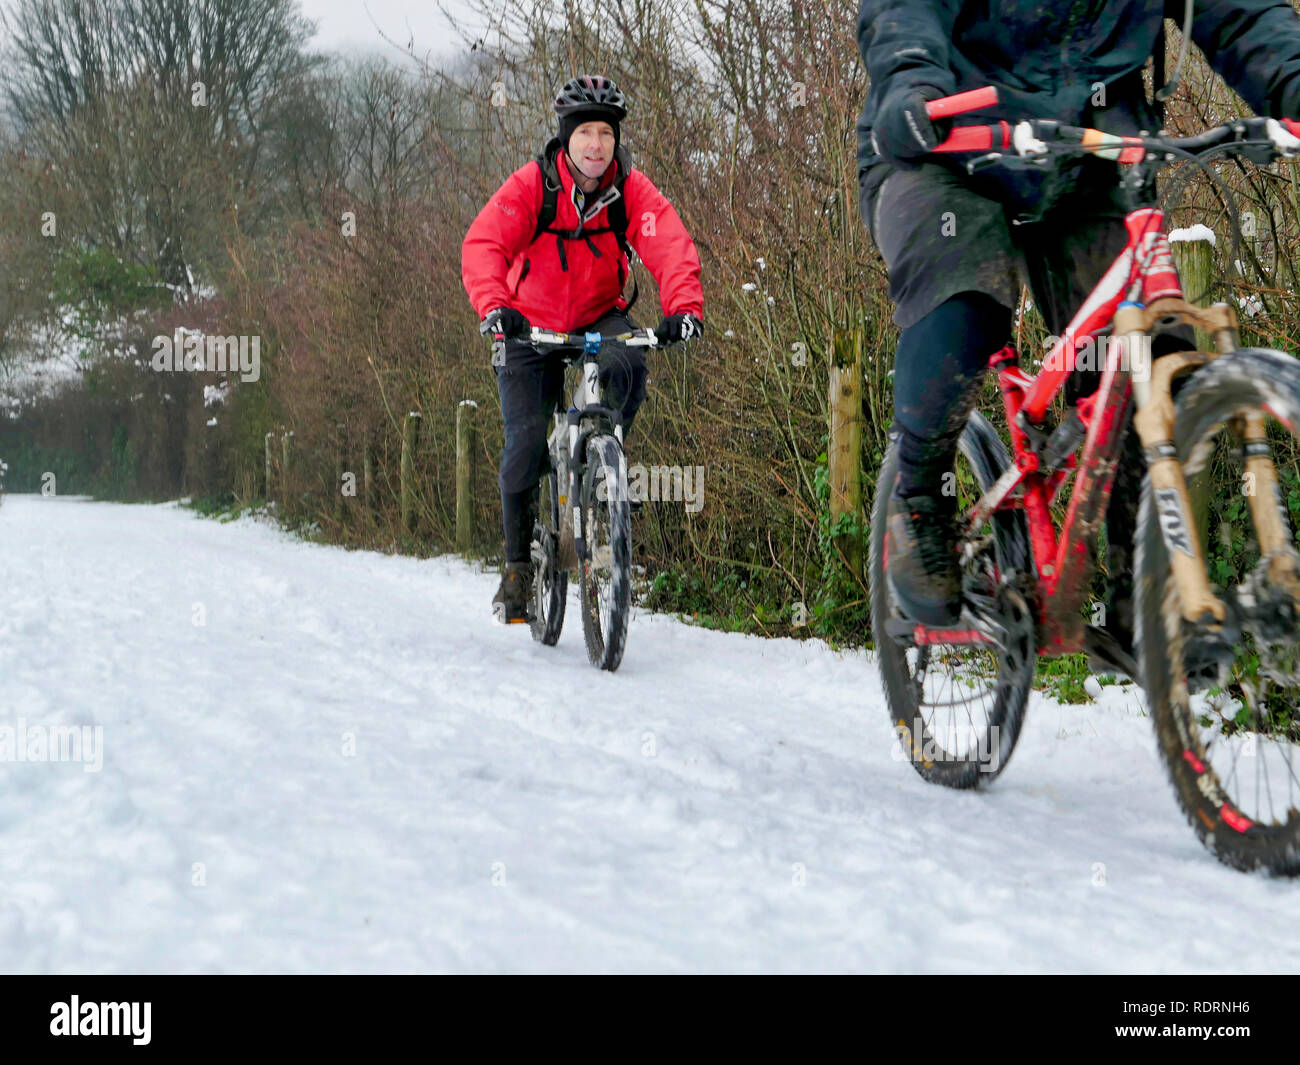 UK Weather: mountain bikers enjoying the snow conditions along the High Peak Trail, Black Rocks, Bolehill, Derbyshire, Peak District National Park Credit: Doug Blane/Alamy Live News Stock Photo